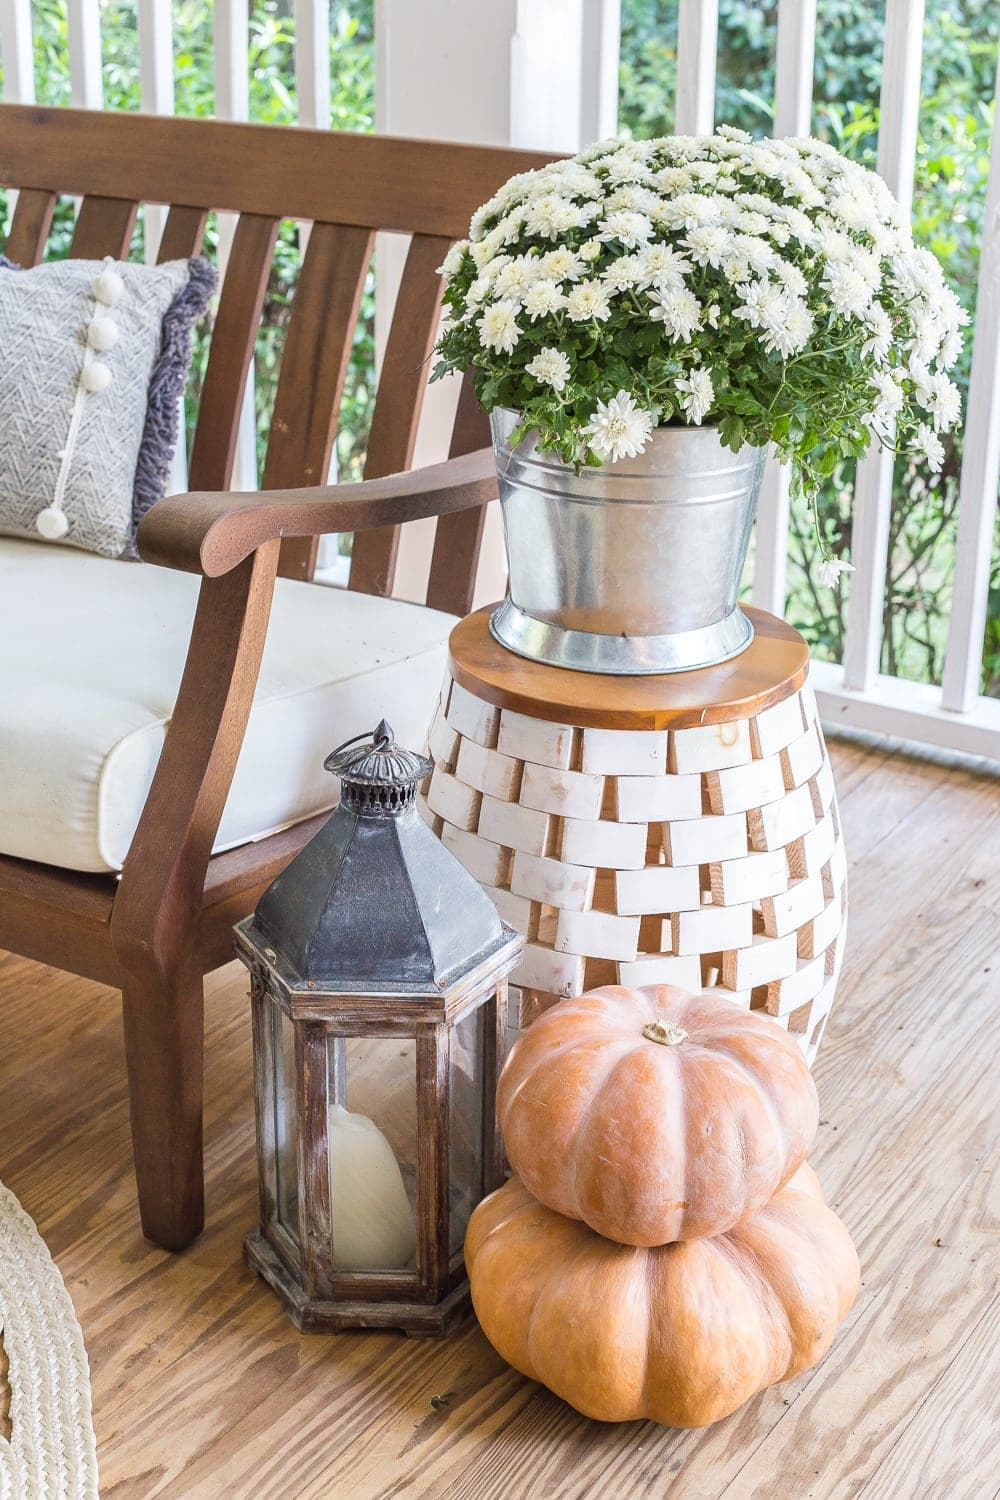 cozy fall porch with lanterns, mums, and pumpkins